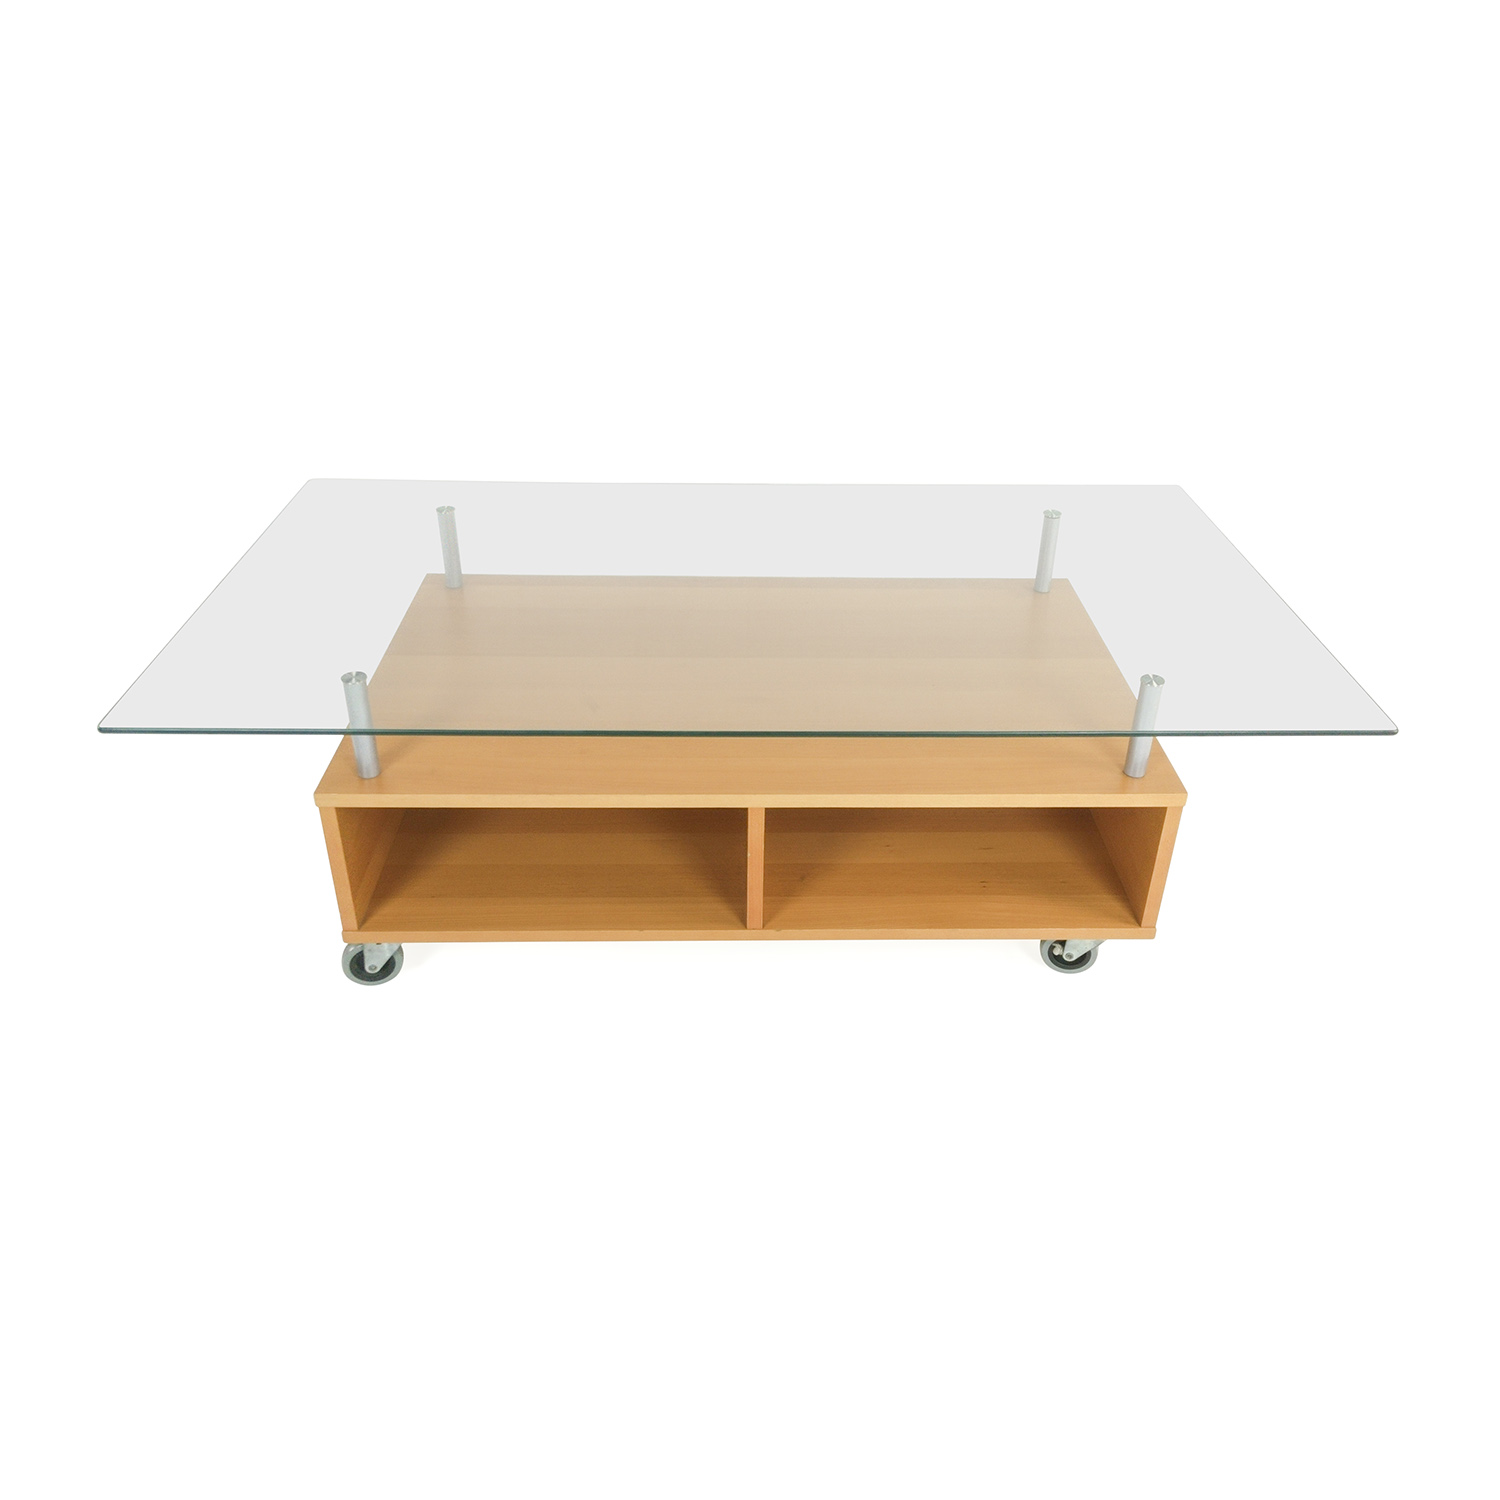 IKEA Glass Coffee Table with Storage for sale